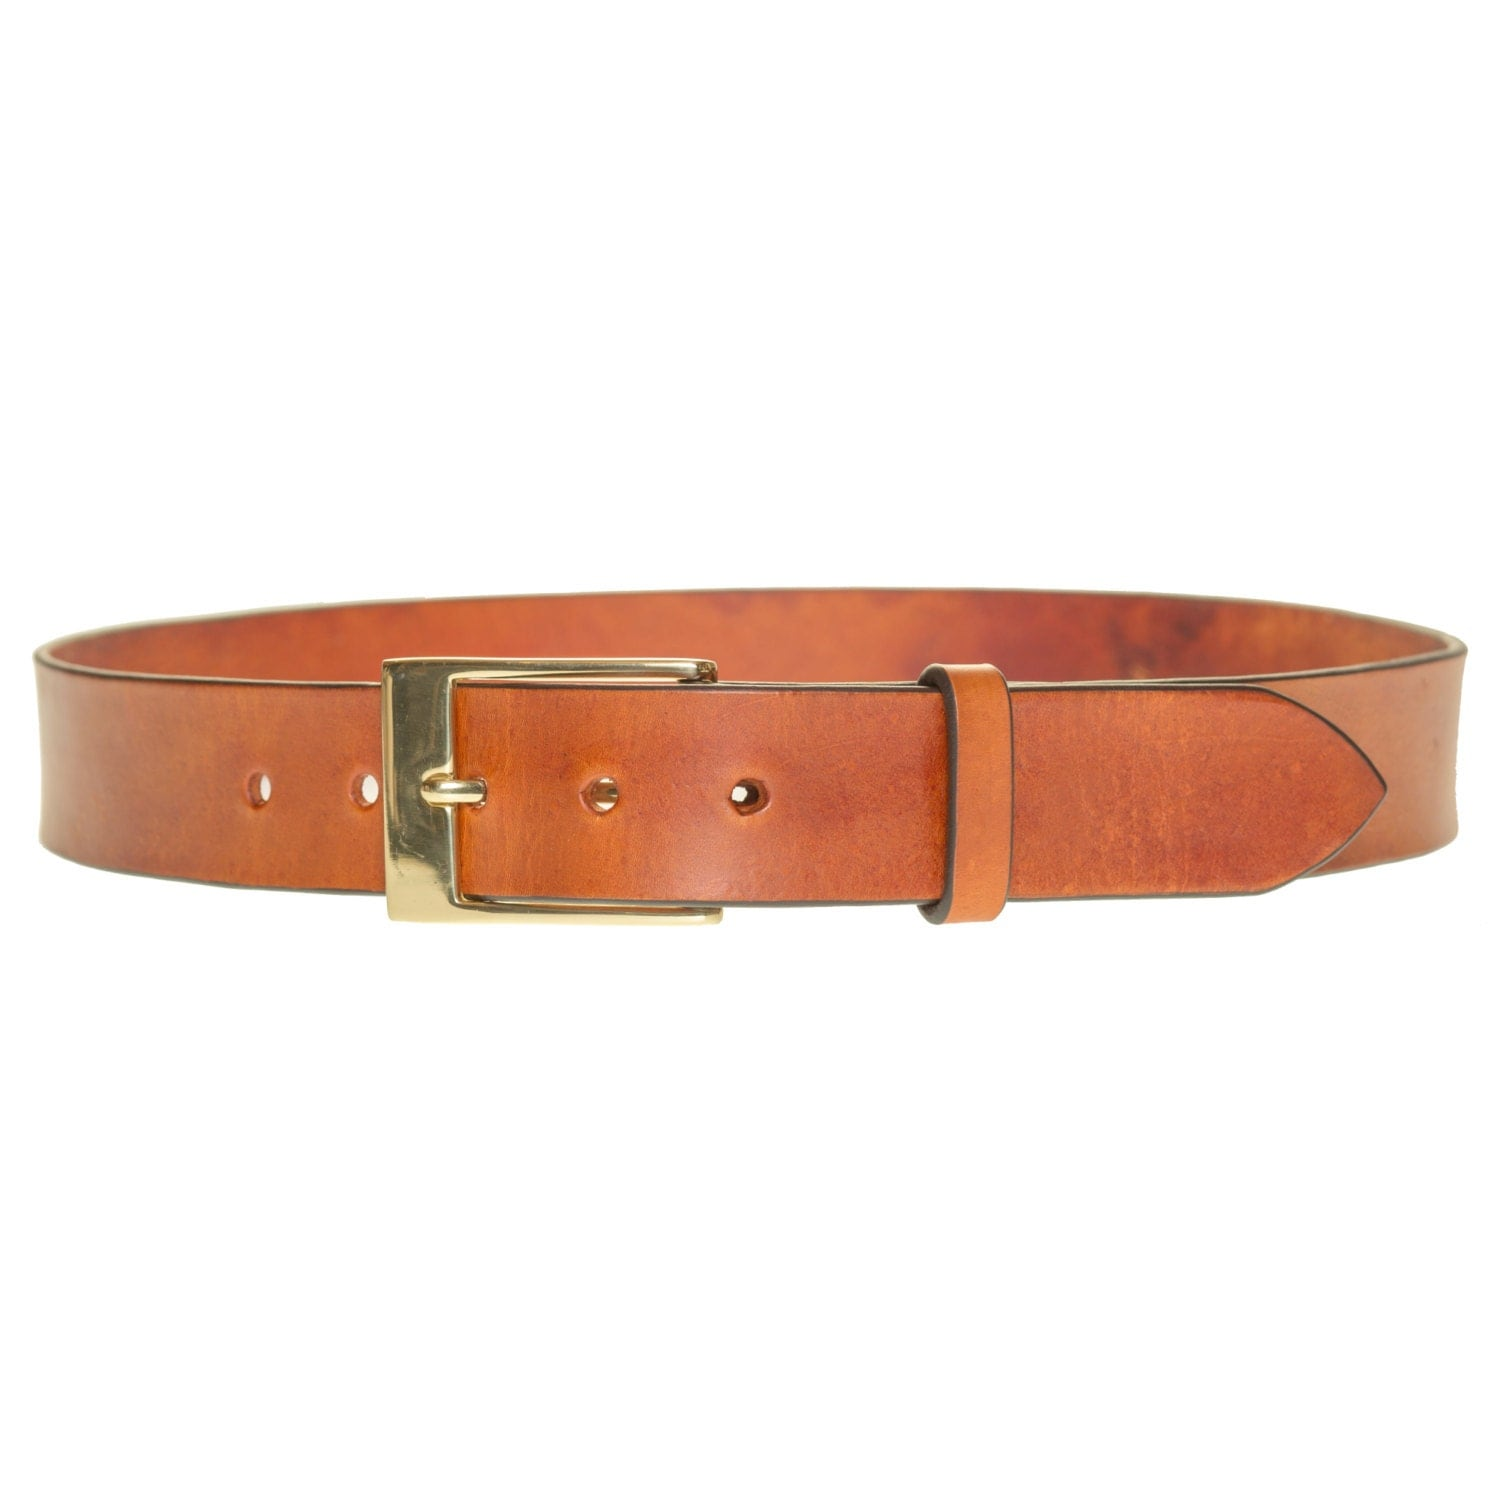 Find great deals on eBay for mens tan leather belt. Shop with confidence.